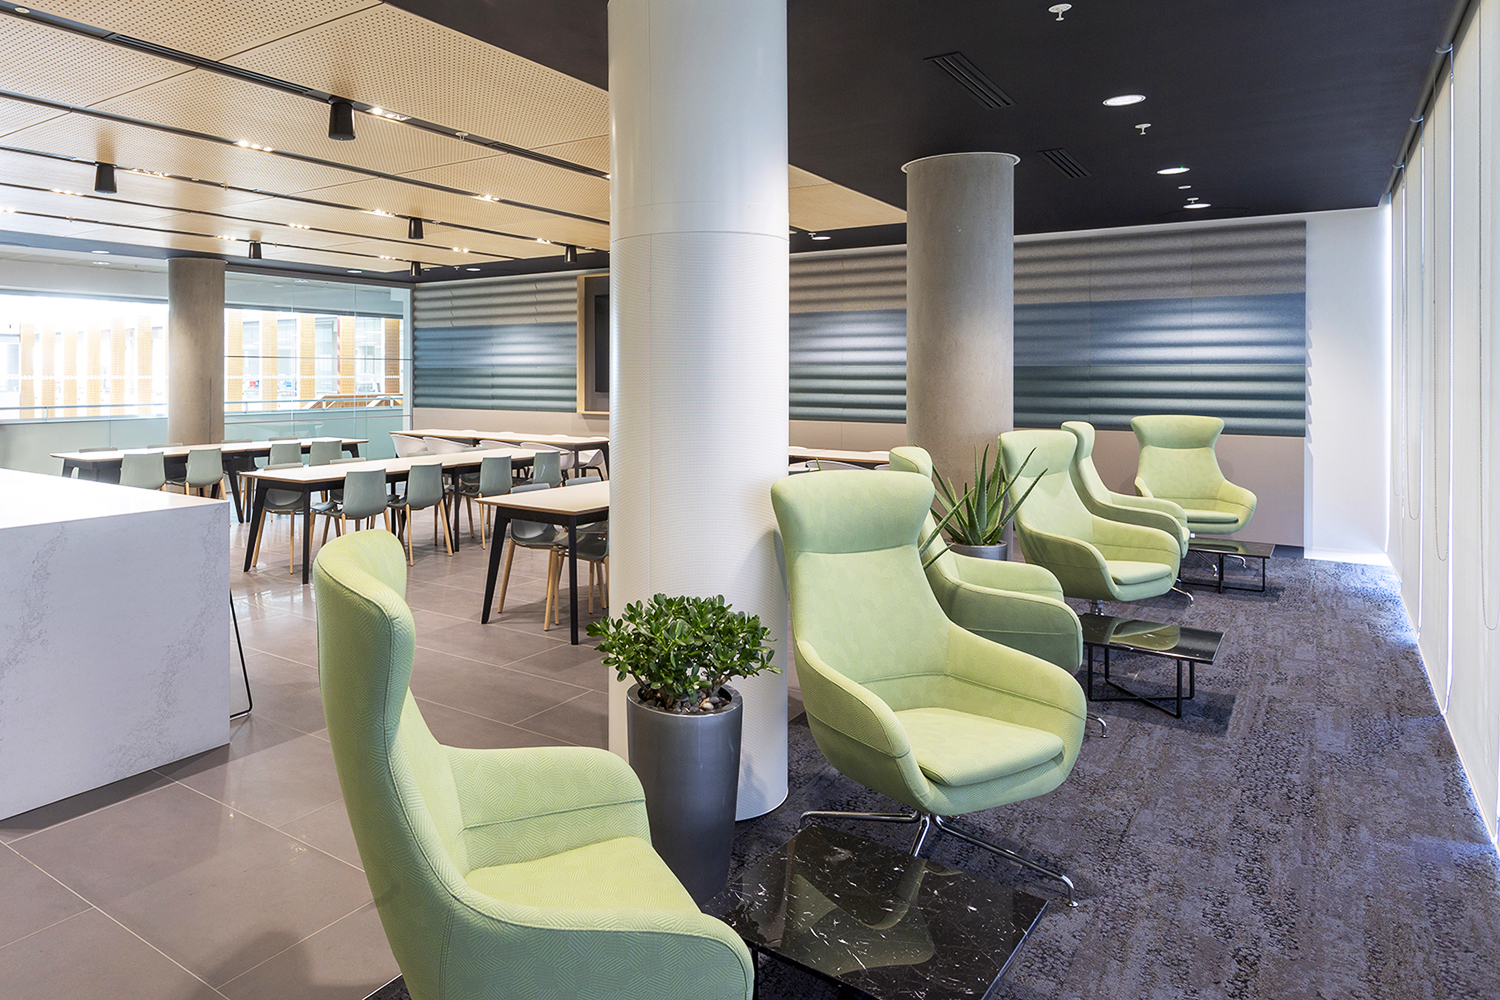 Autolus - White City Place, London - February 2019. Fit-out by Mansfield Monk.